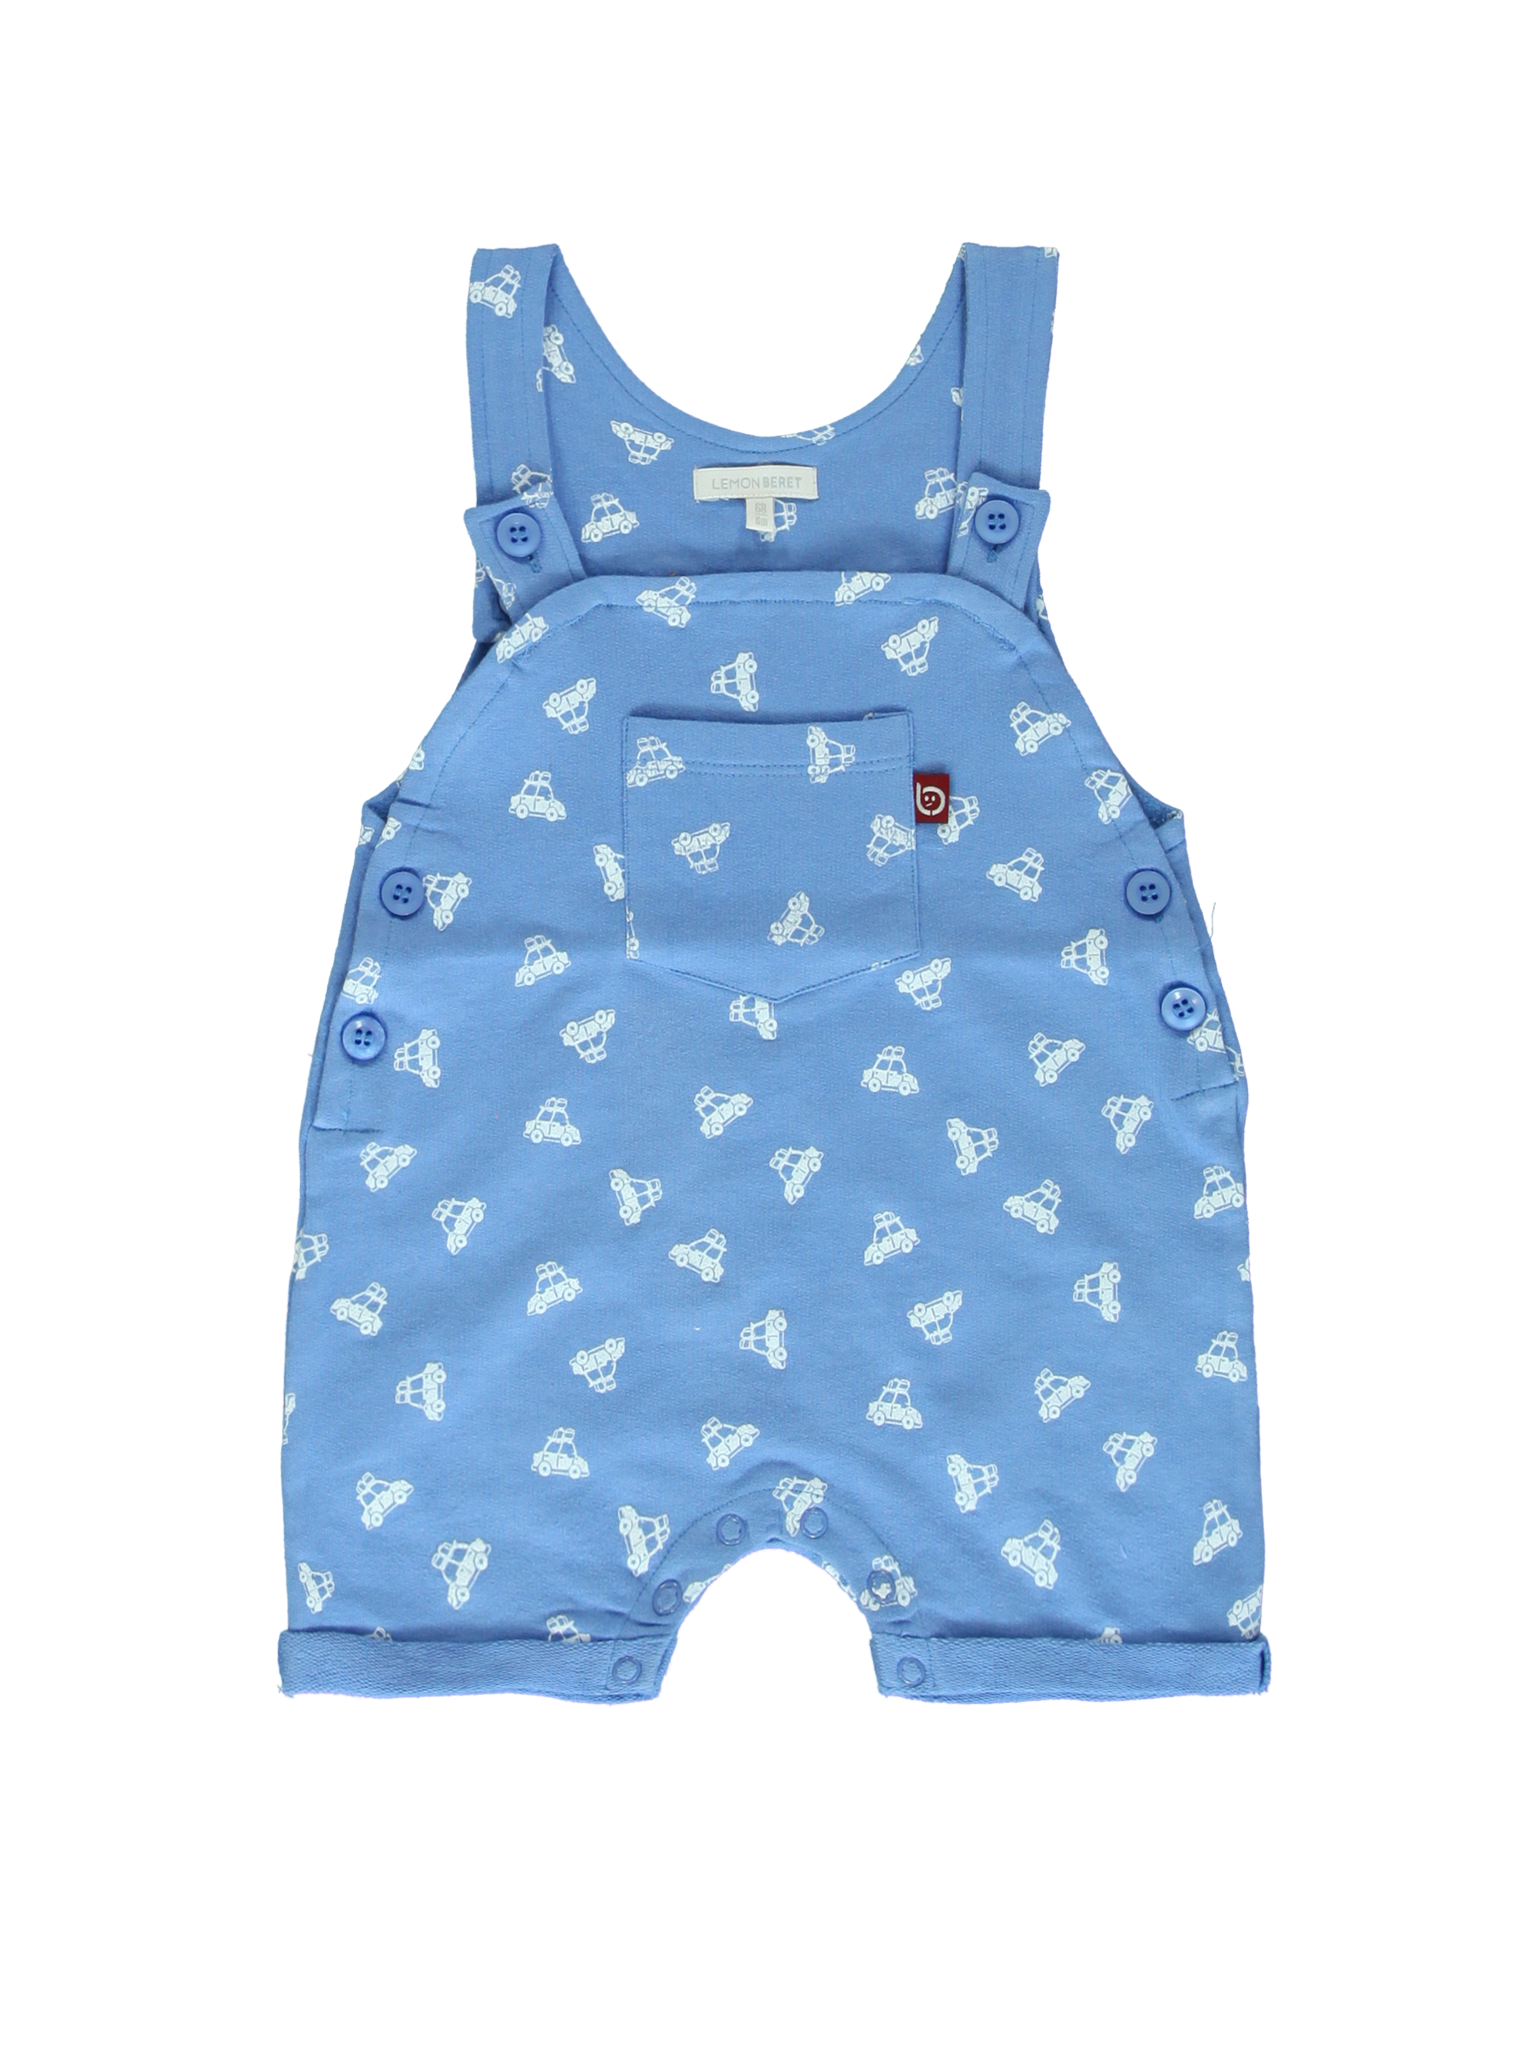 All Brands | Summerproducts Baby | Overall | 8 pcs/box